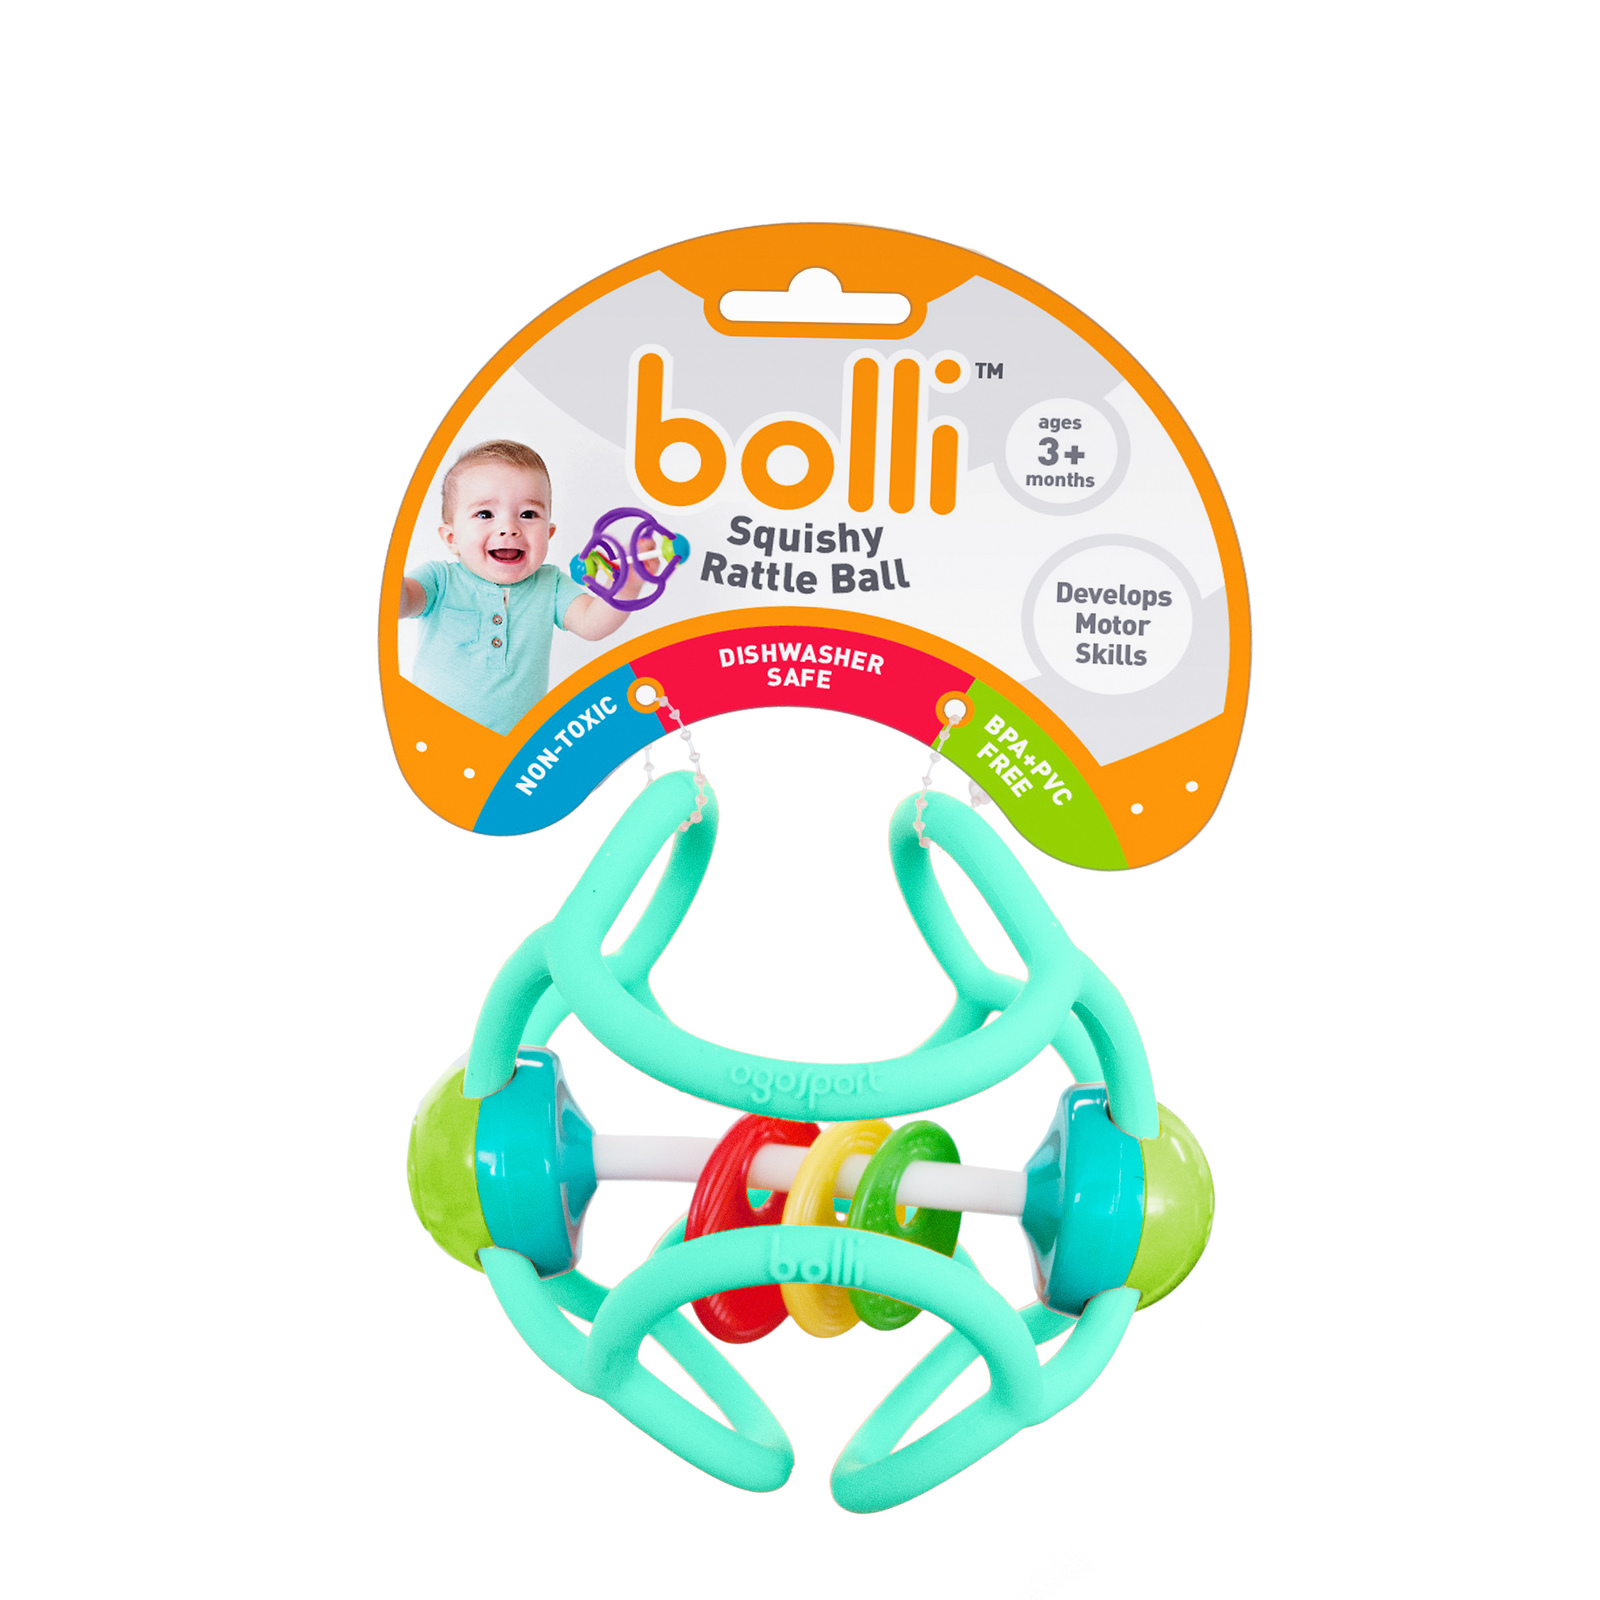 Bolli Ball - Flexible Discovery Rattle Ball (Assorted Colours) image